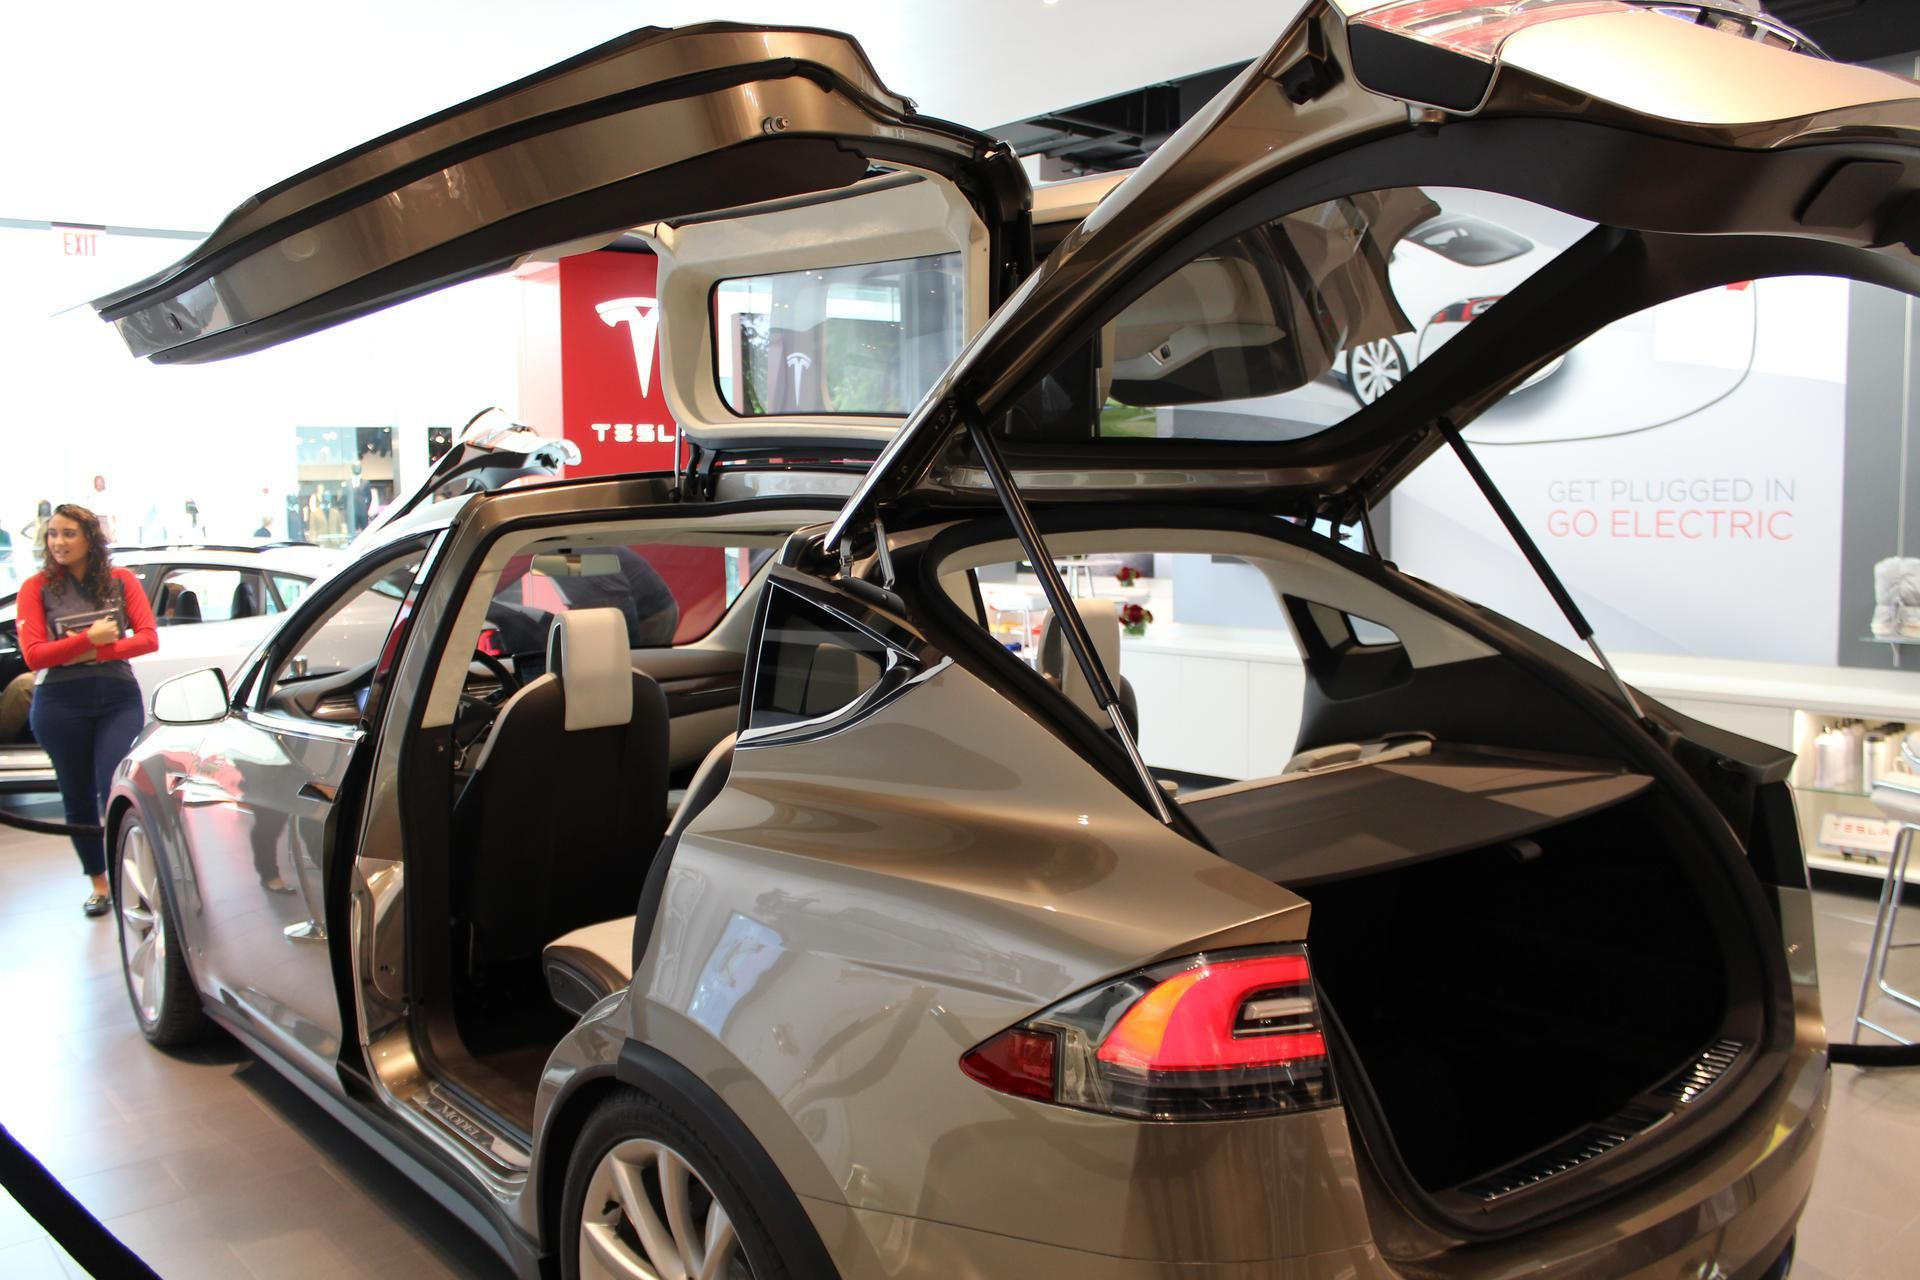 Tesla model s rear facing child seats half folded our tesla model s beauty shots inside pinterest